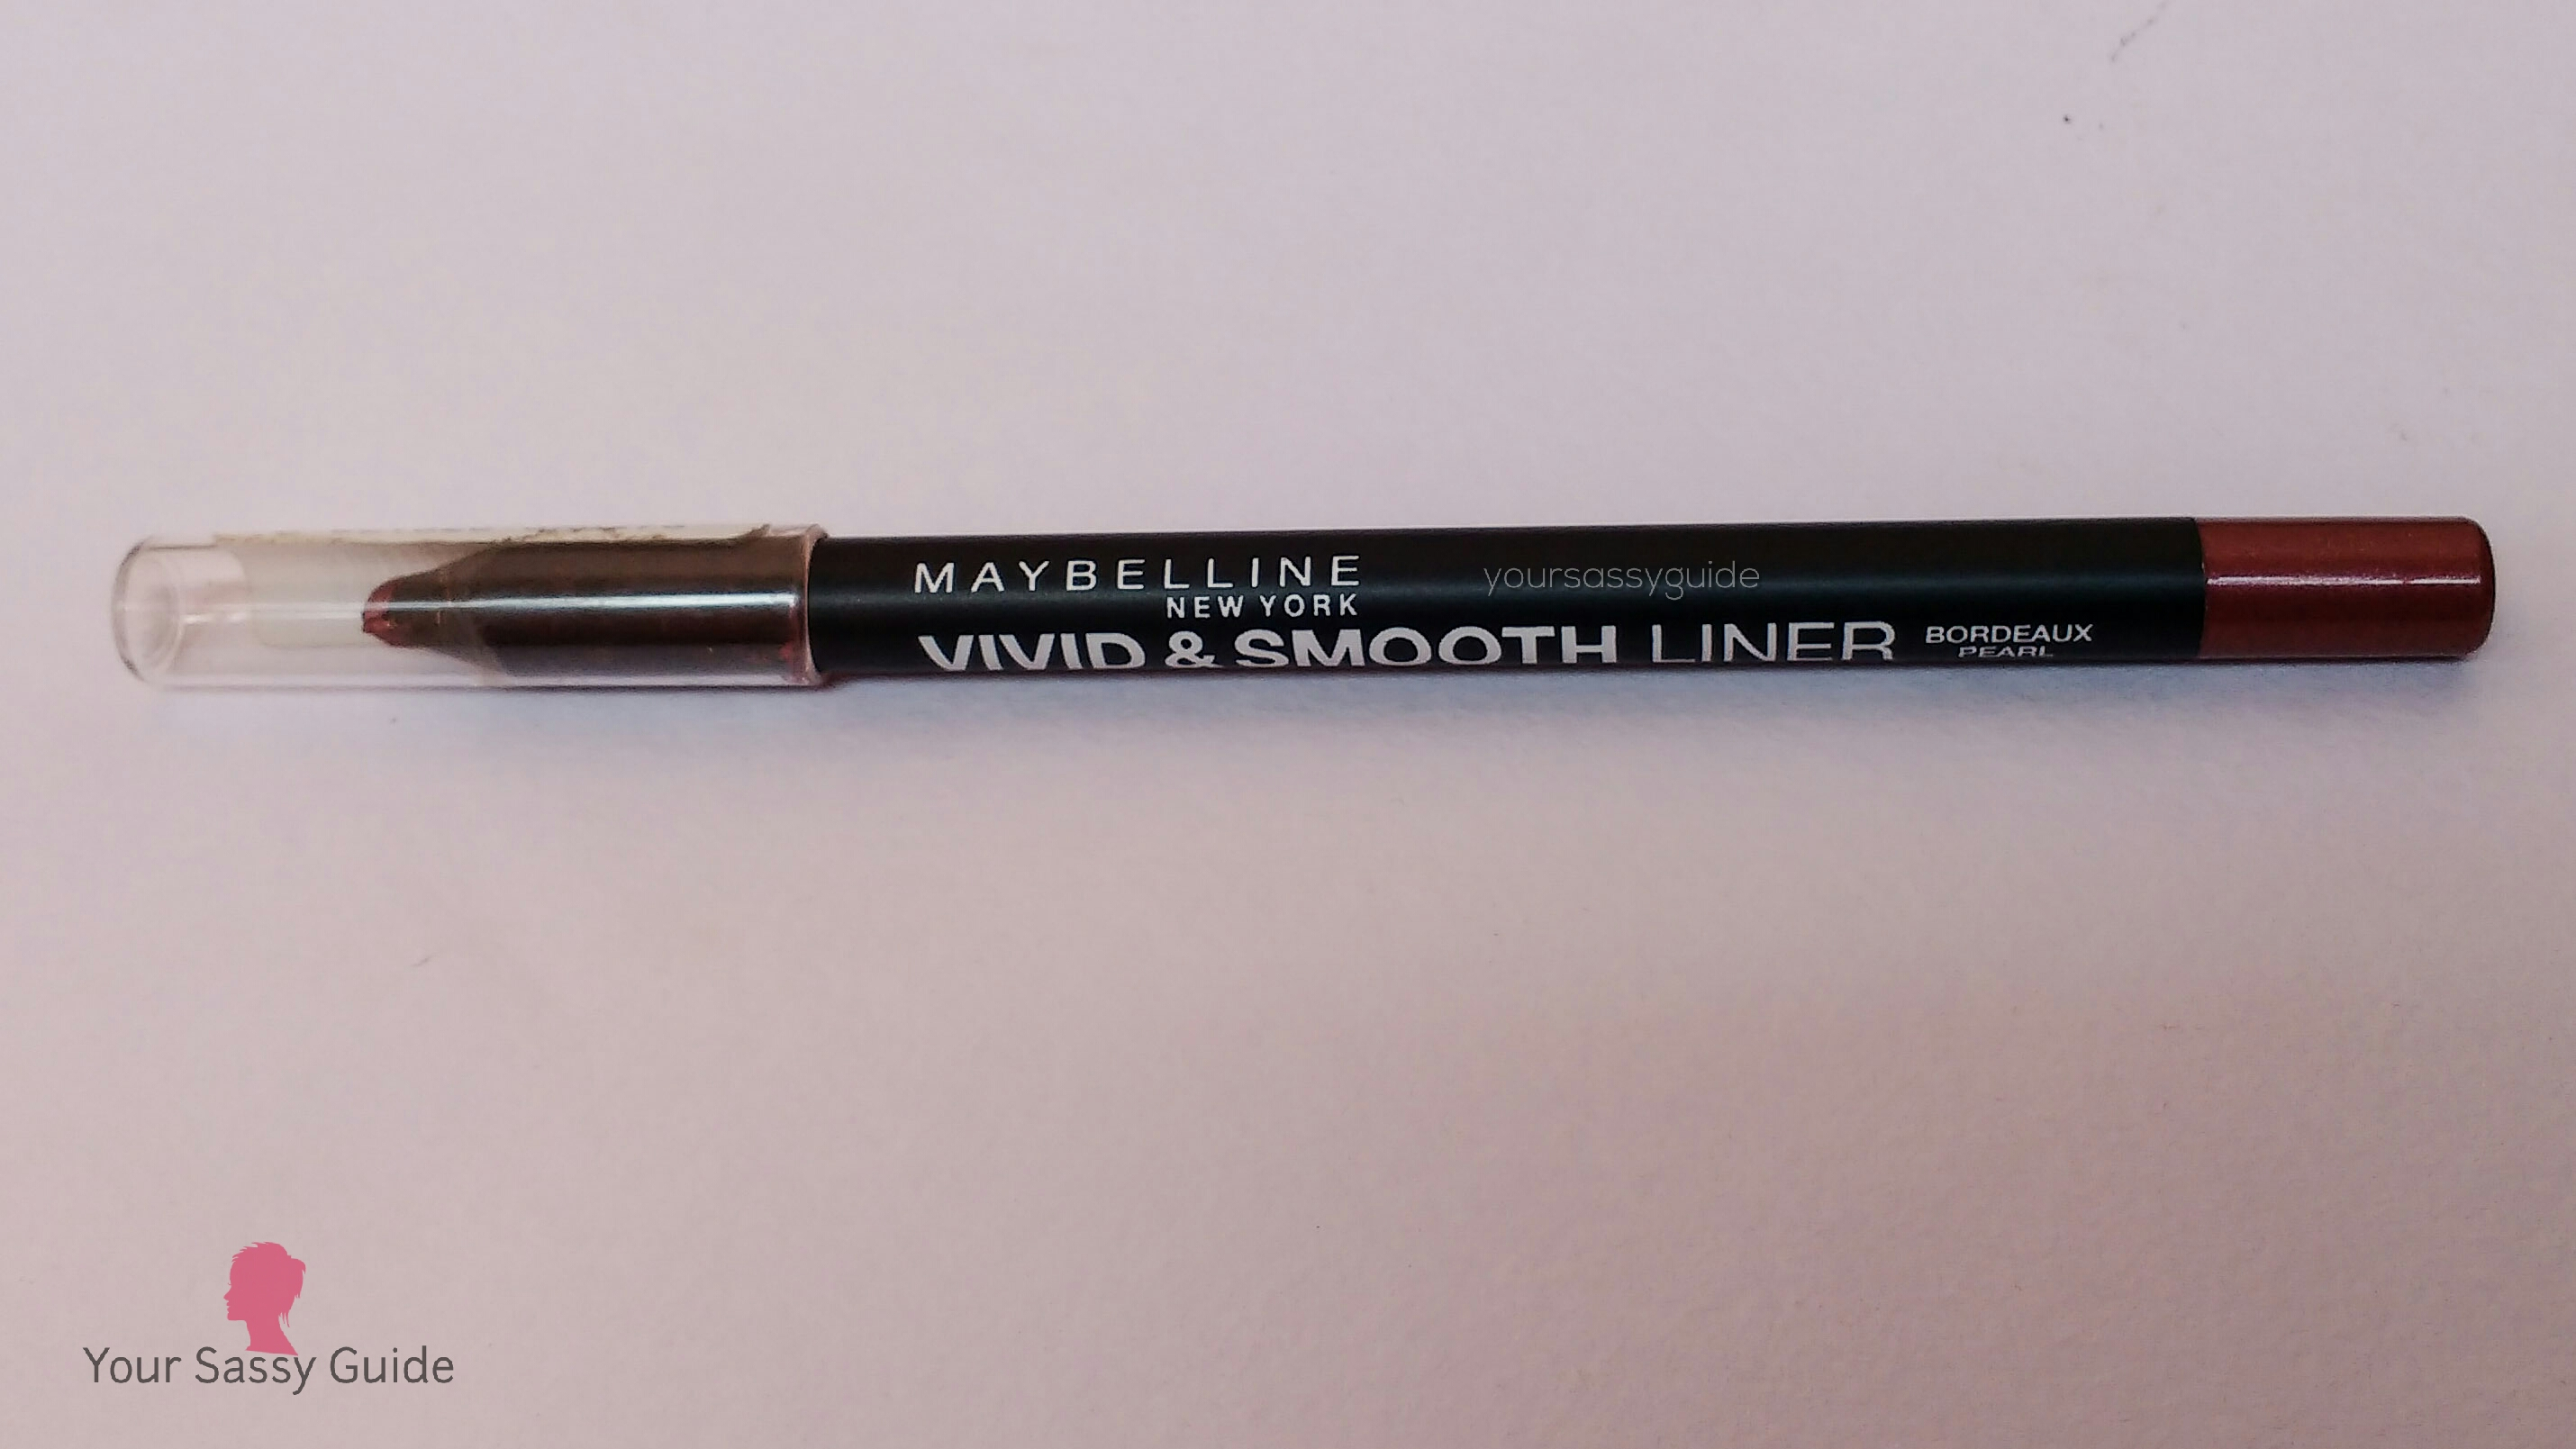 Maybelline Vivid and Smooth Liner by Eyestudio - Bordeaux Pearl